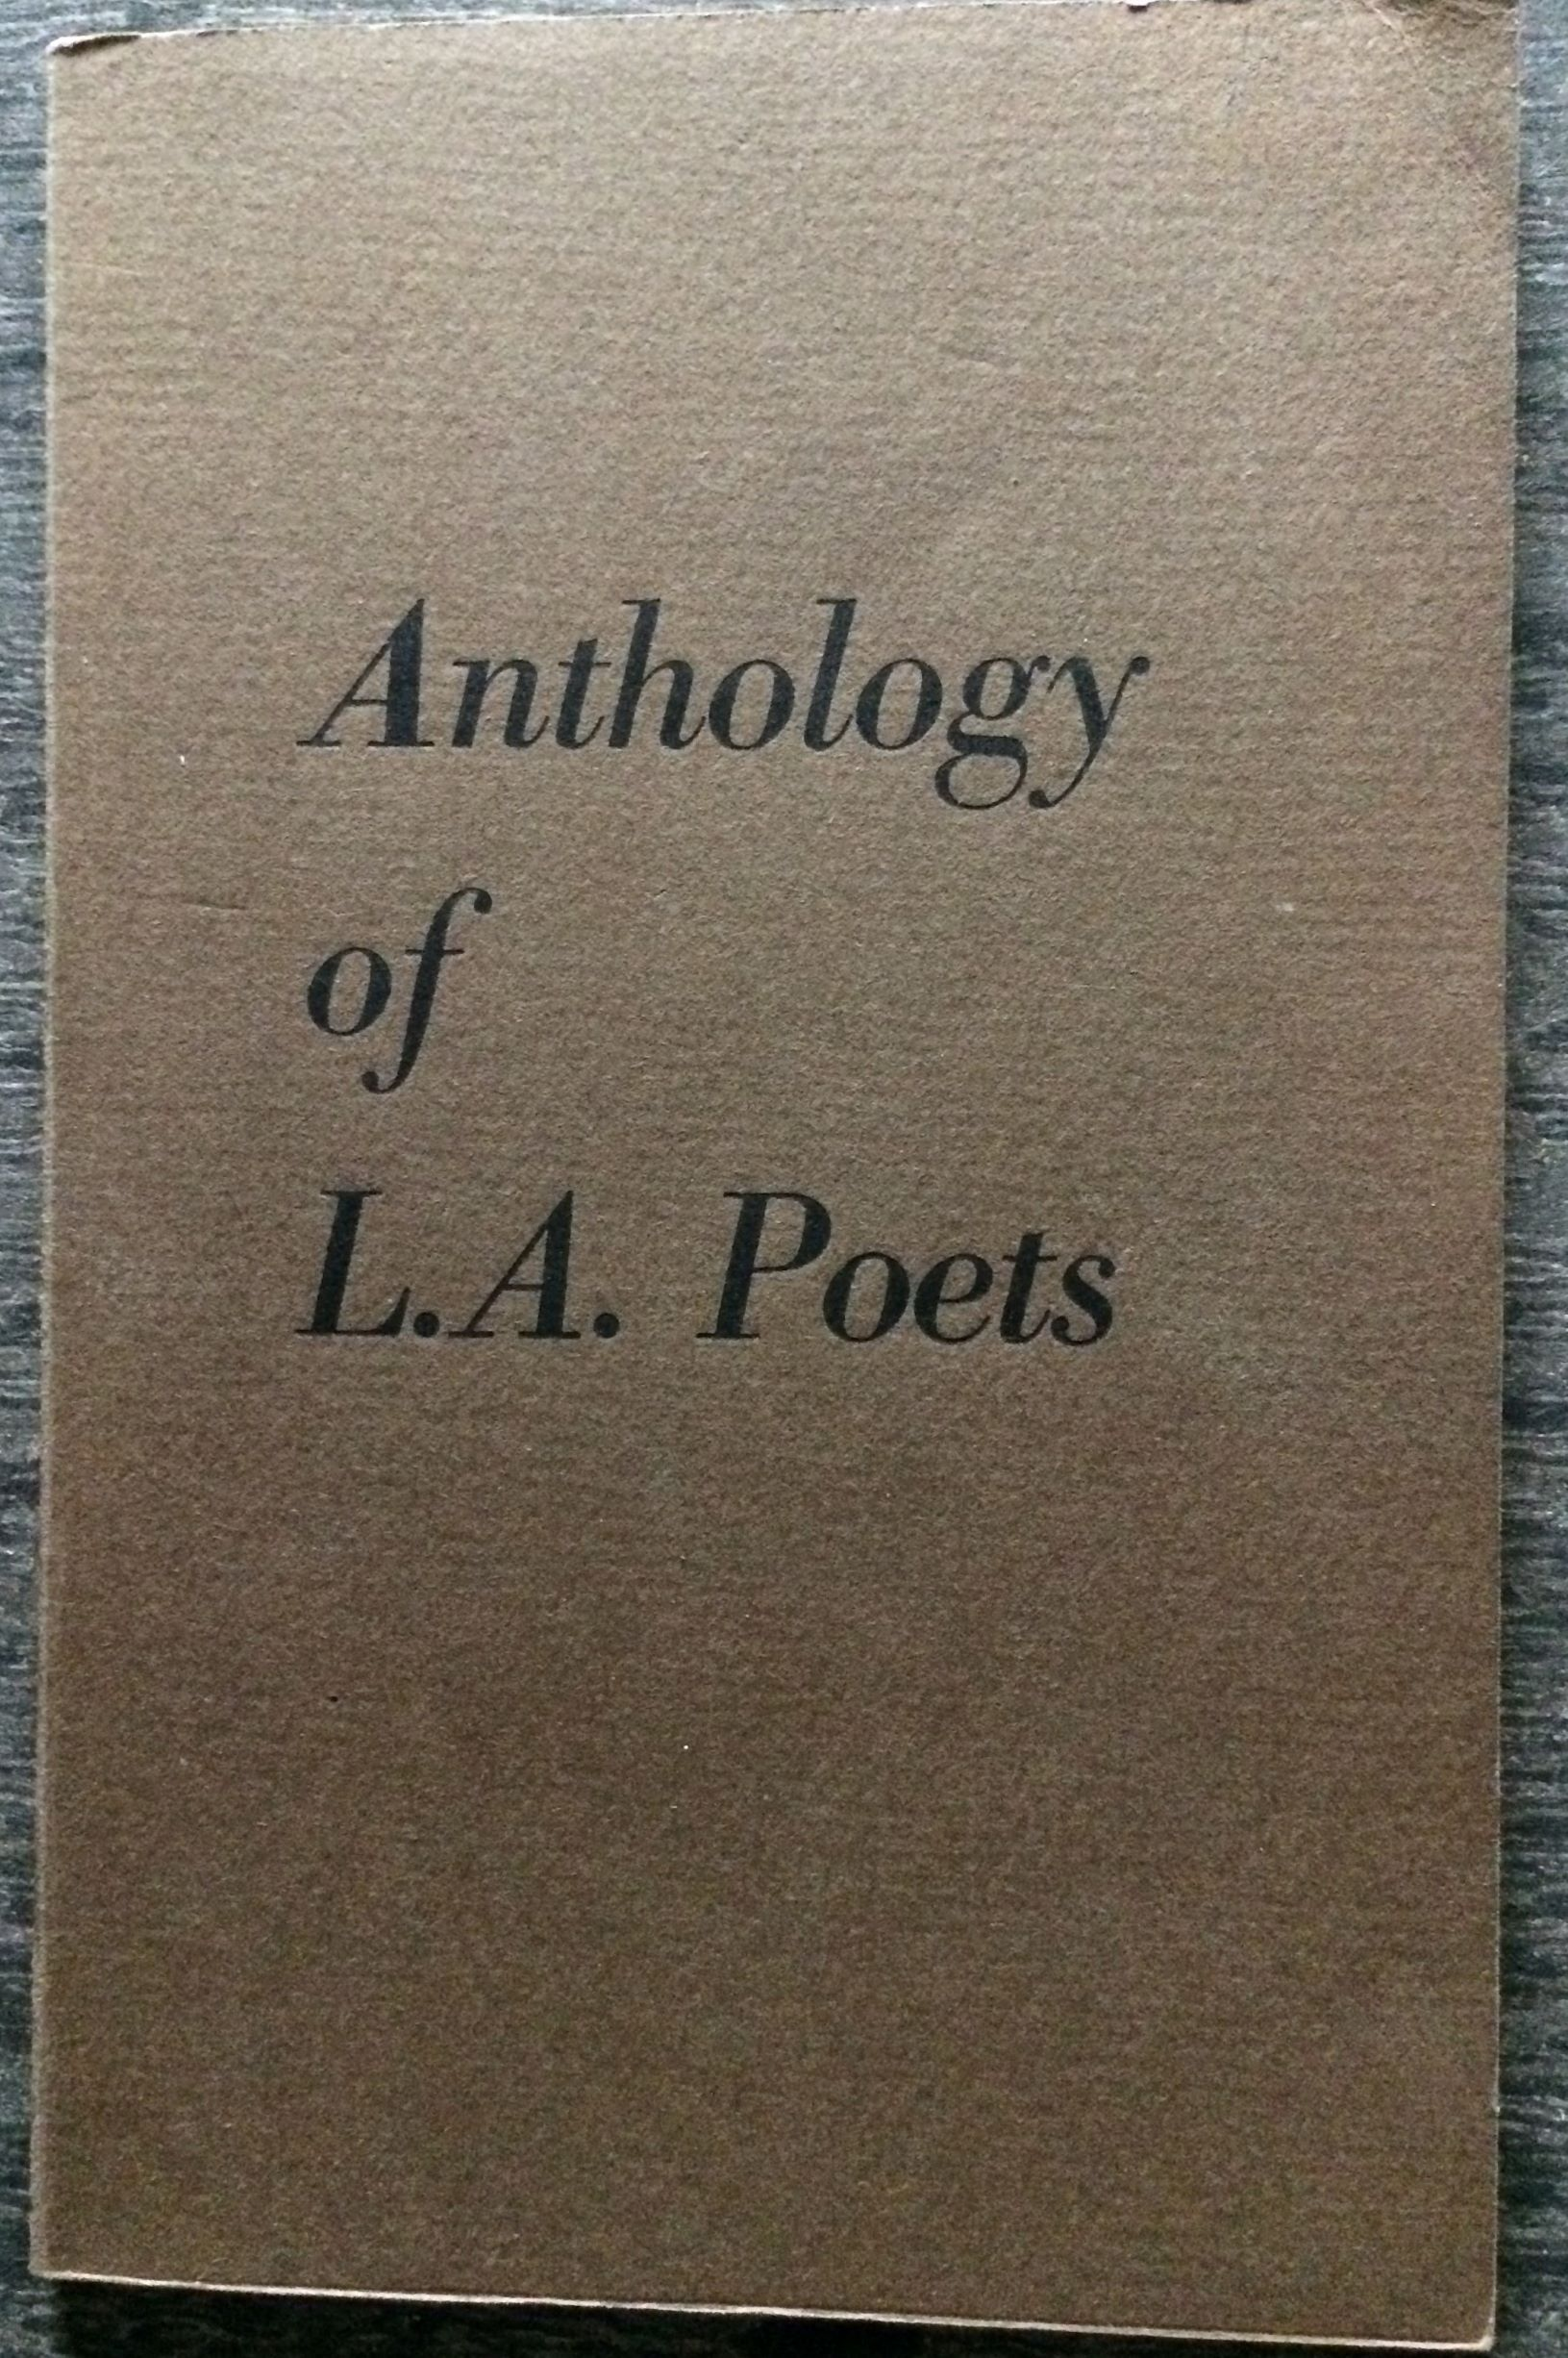 Image for Anthology of L. A. Poets.